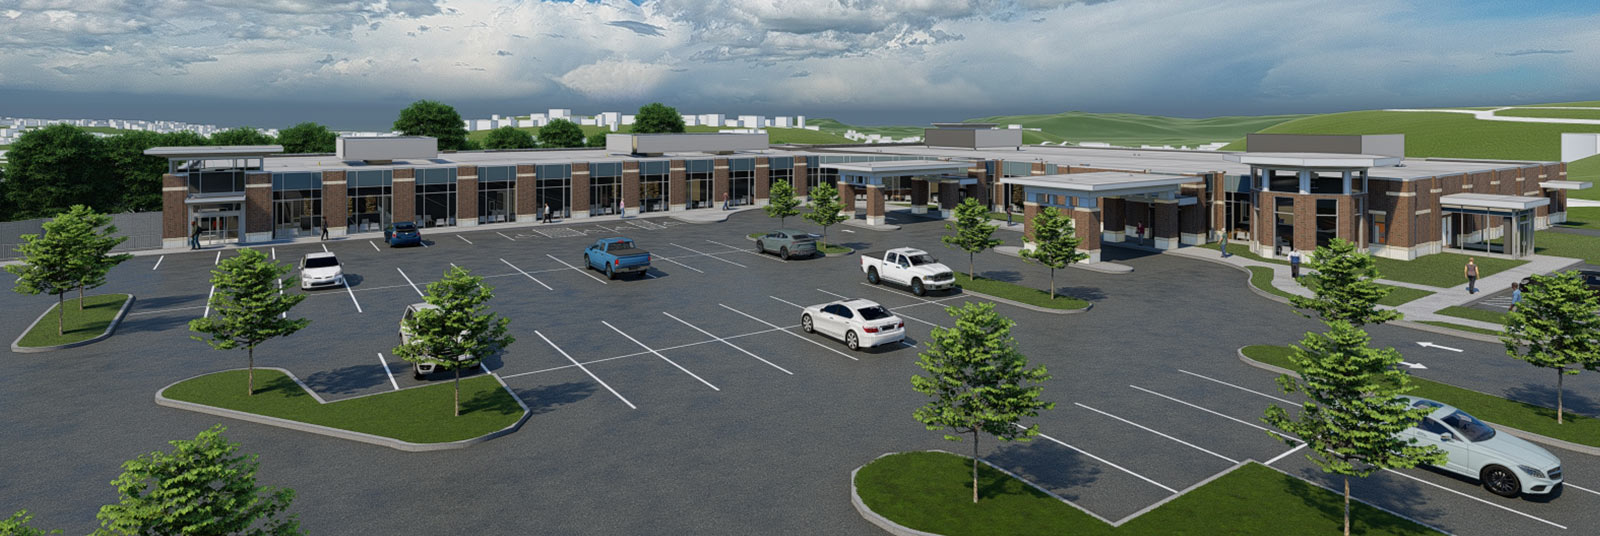 St. Elizabeth Fort Thomas medical office building renderings showing aerial view of the completed facility.